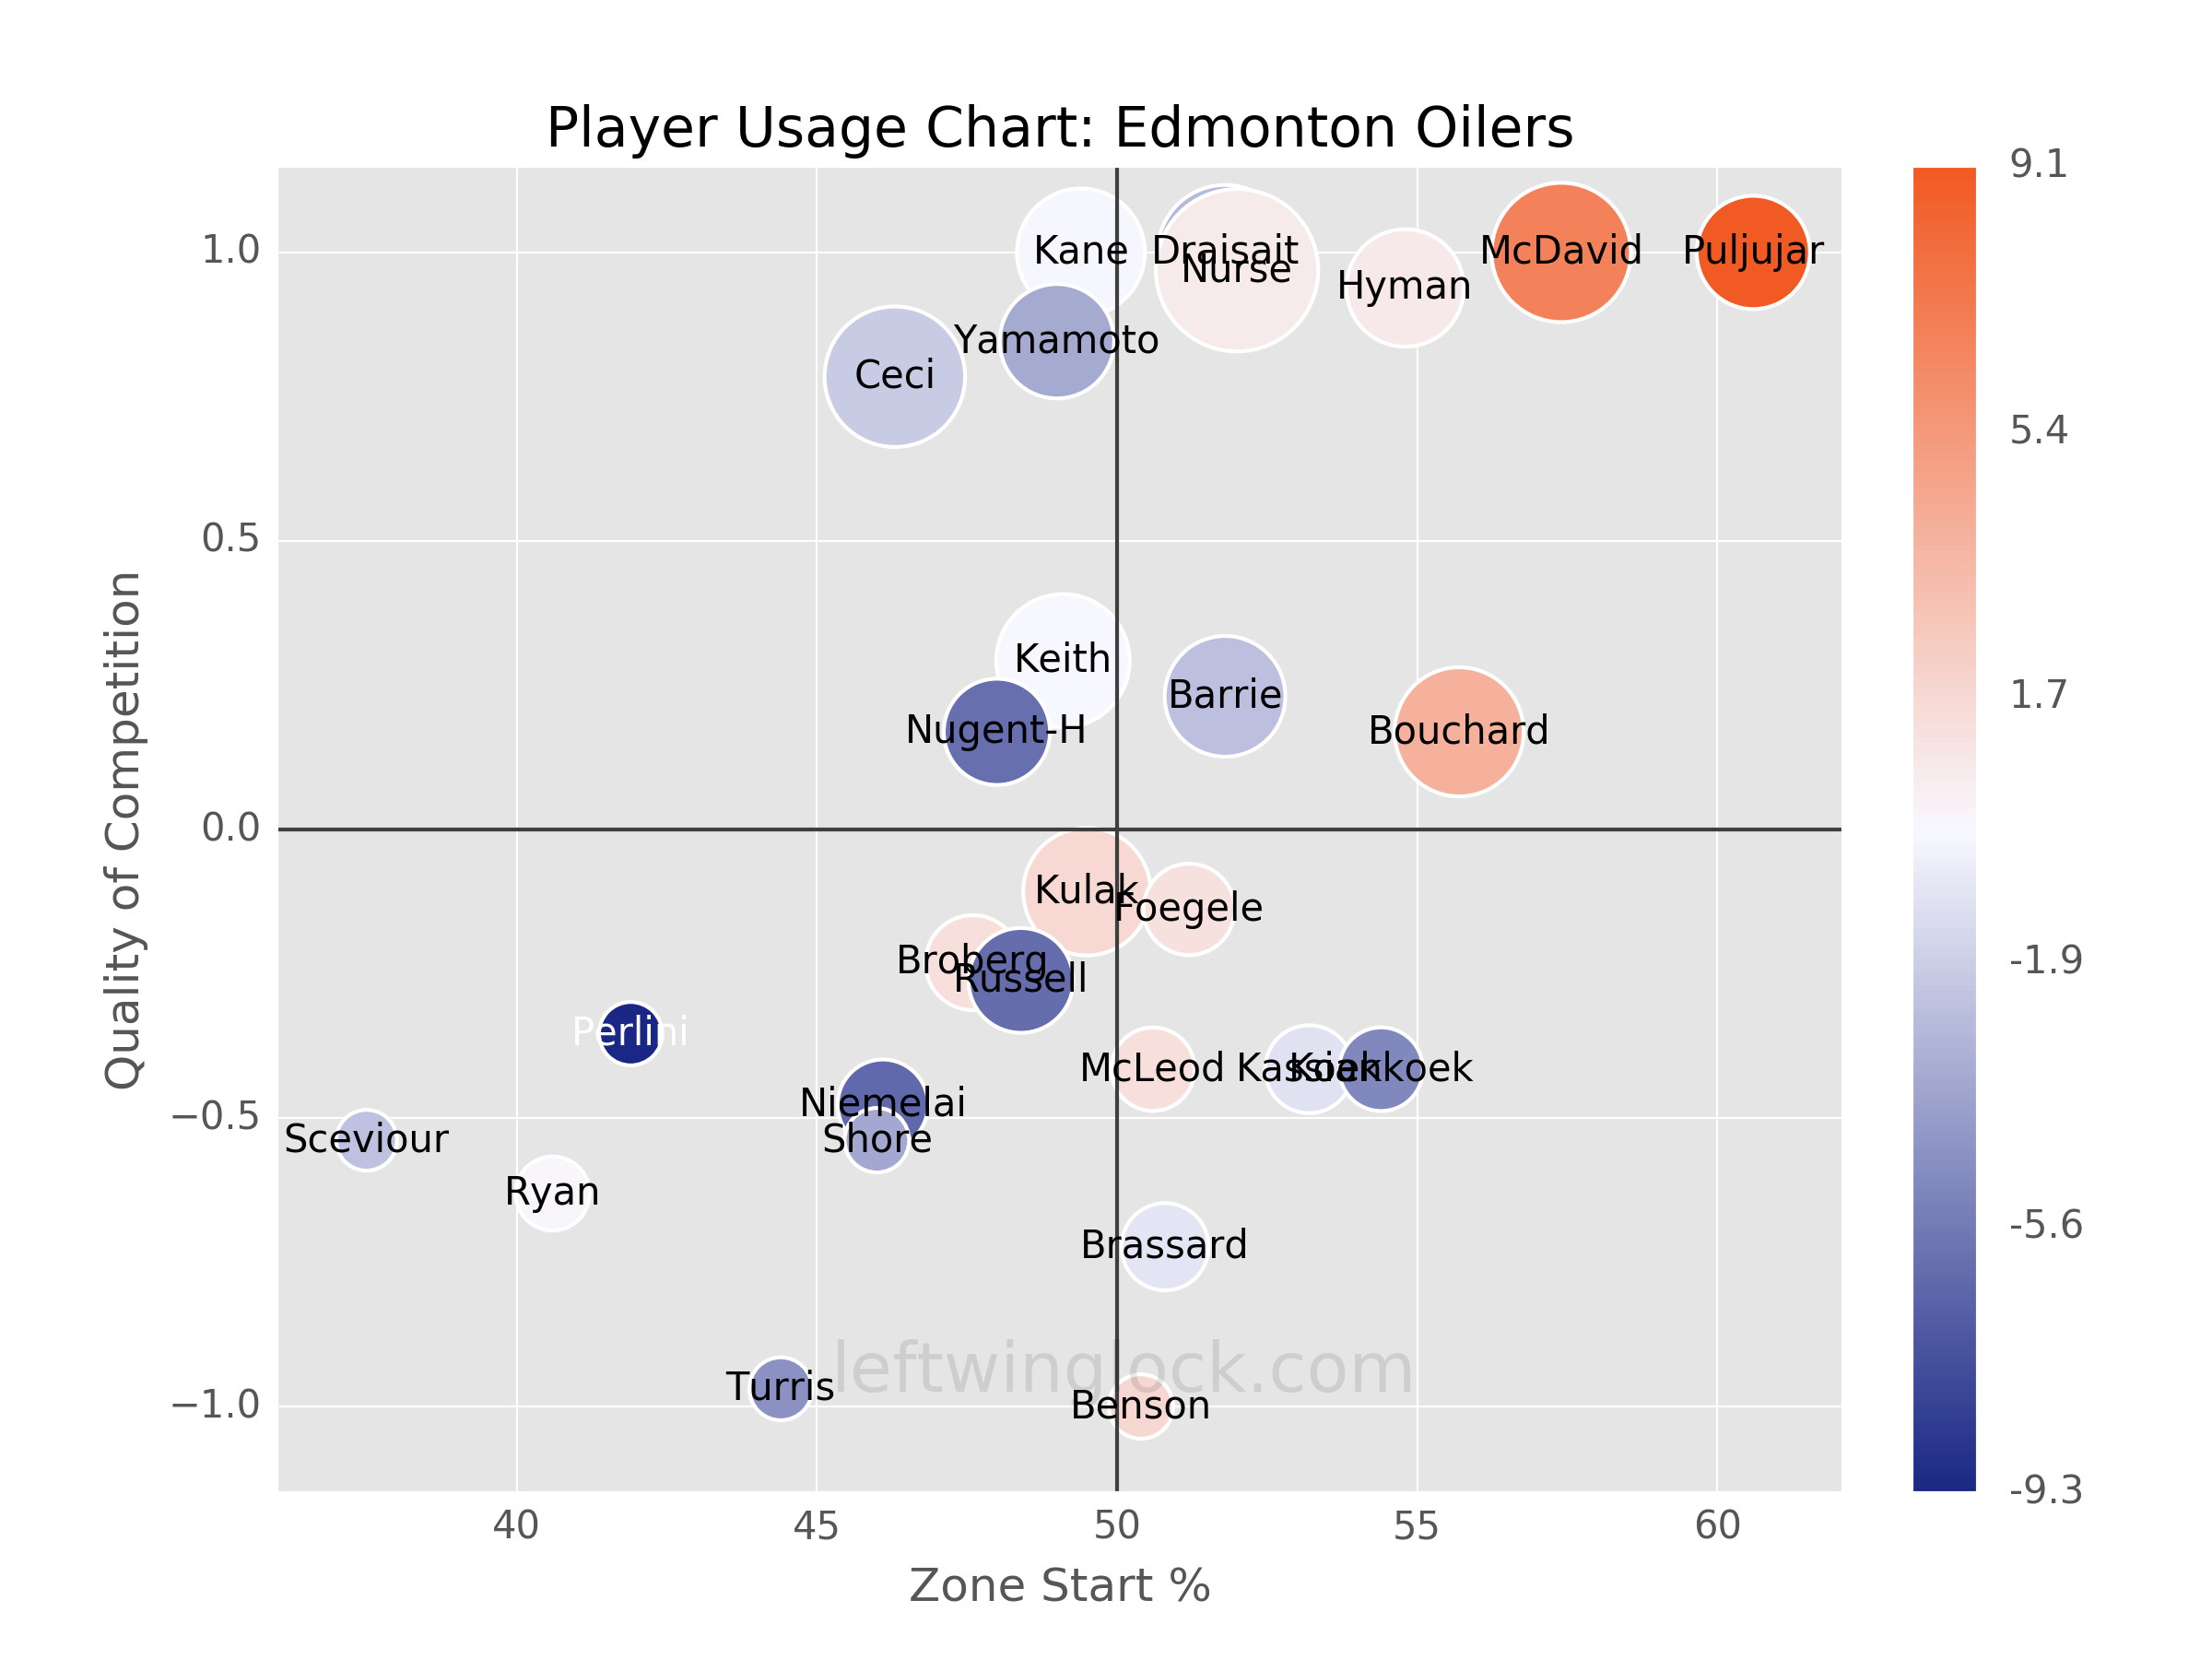 Edmonton Oilers Player Usage Chart